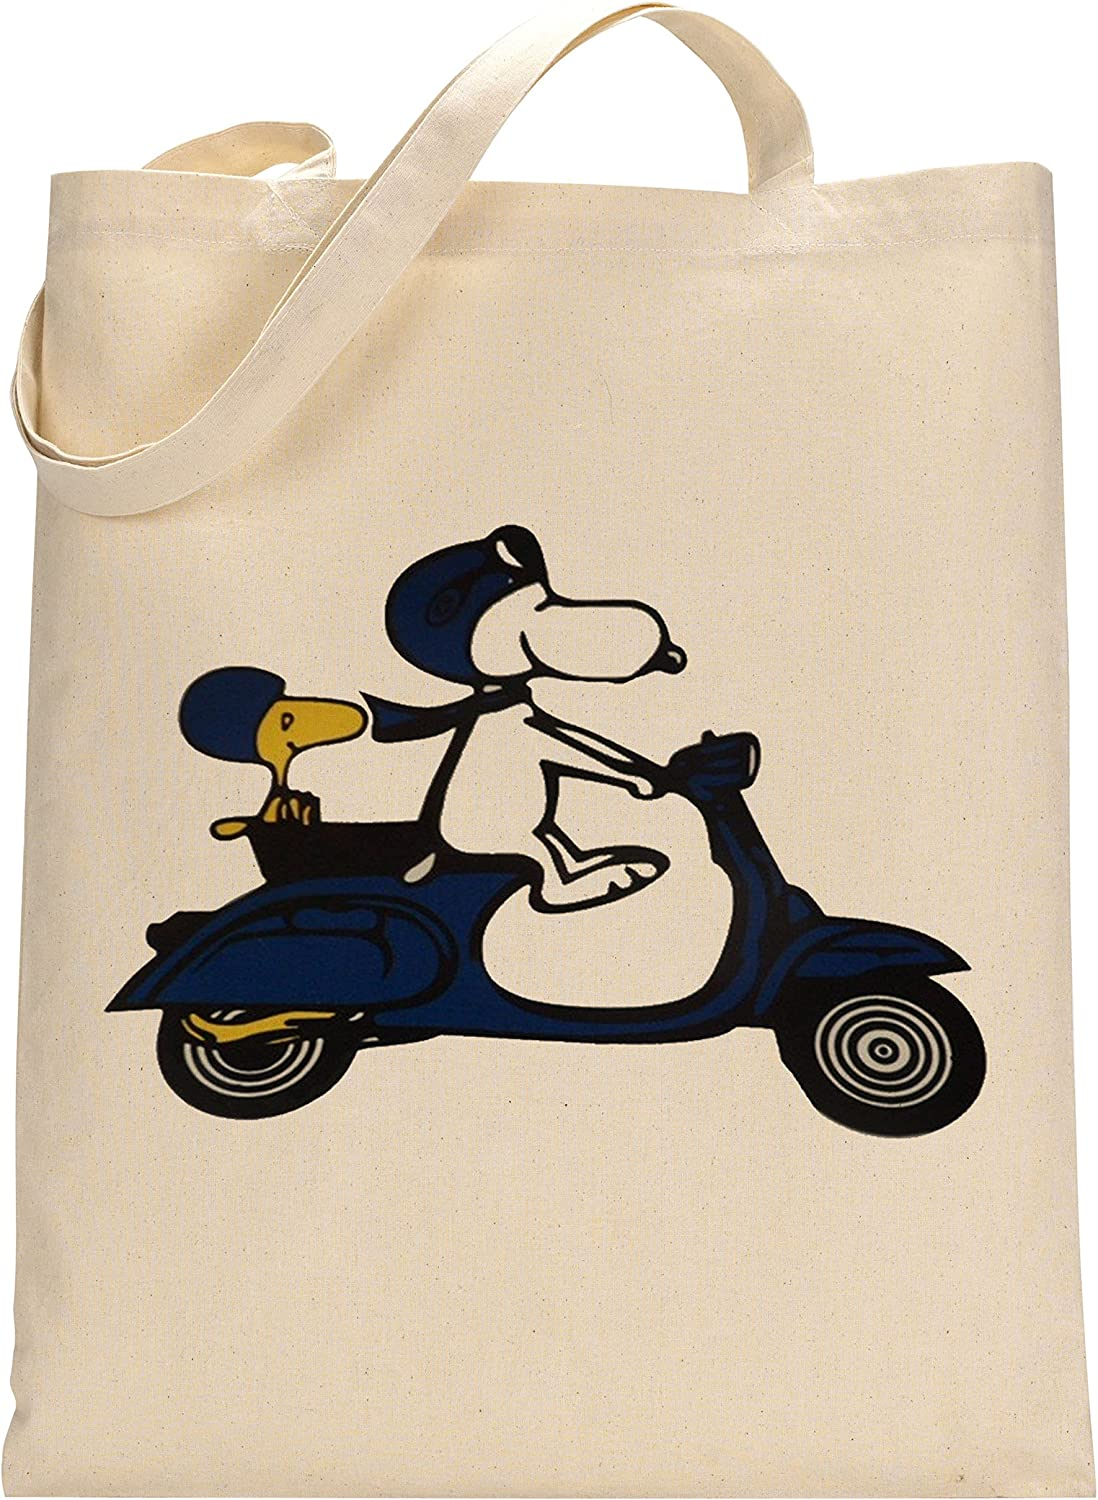 FunnyWear Vintage Scooter Fan Snoopy Peanuts Custom Made Tote Bag